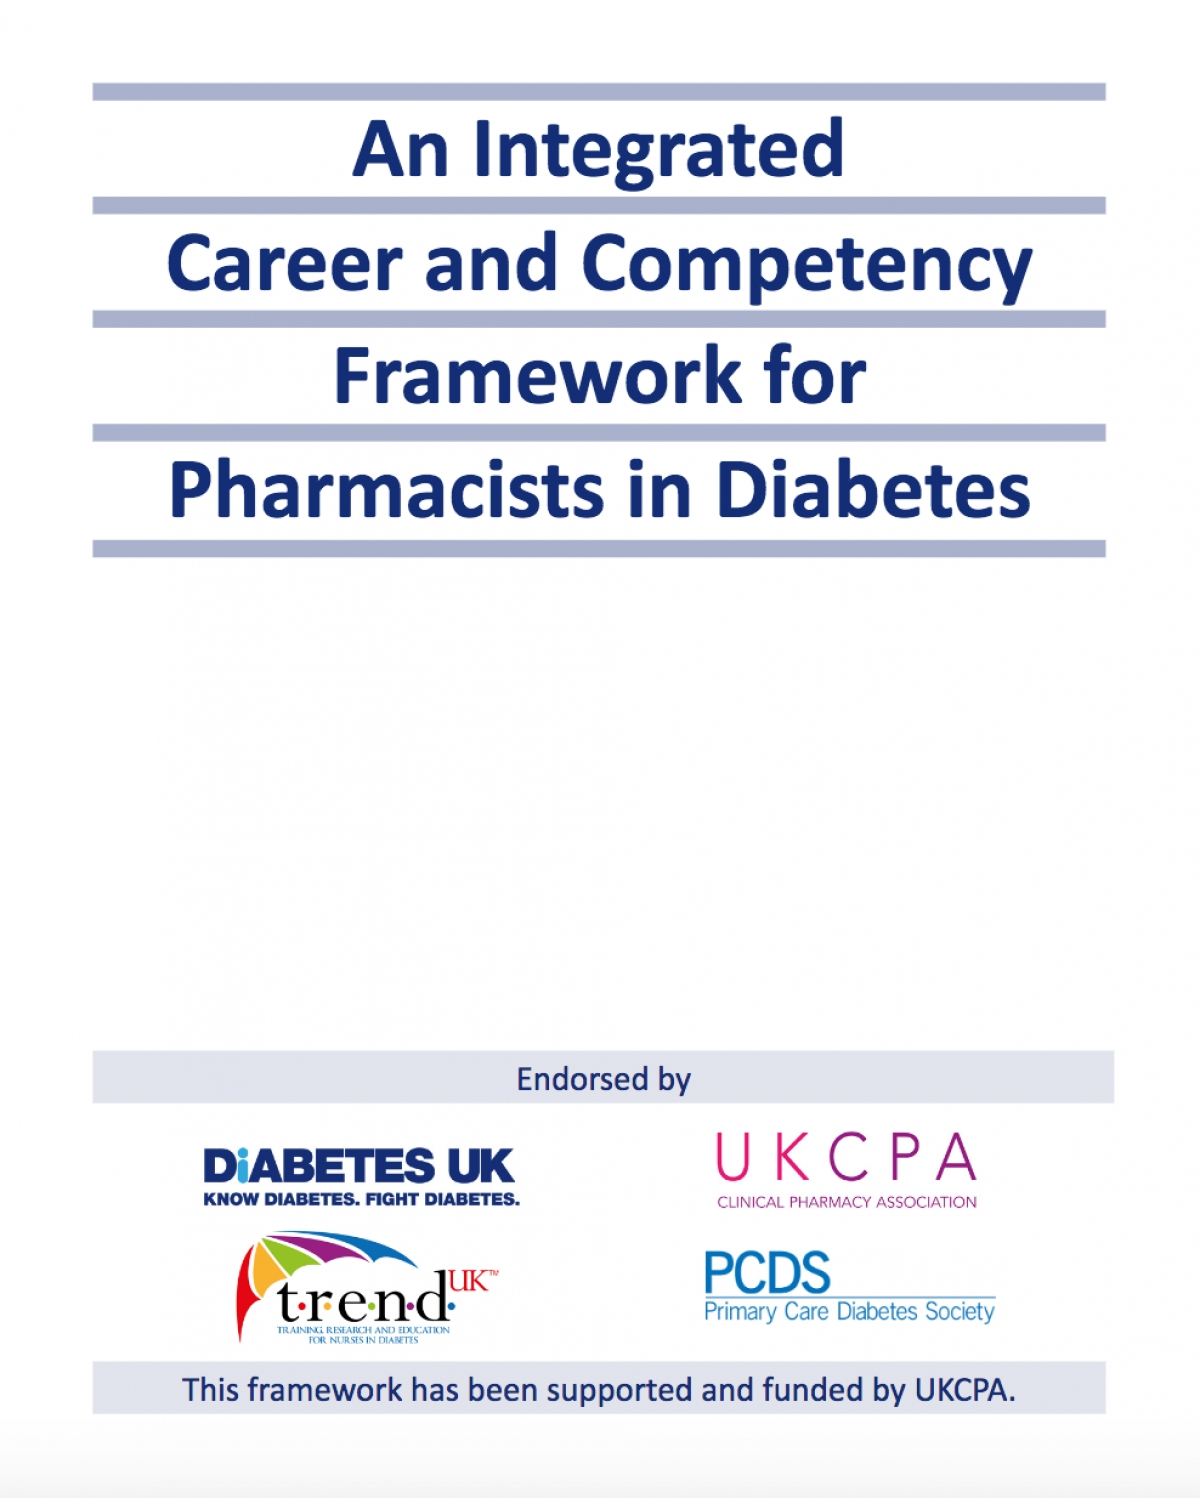 NEW career and competency framework for pharmacists in diabetes launched